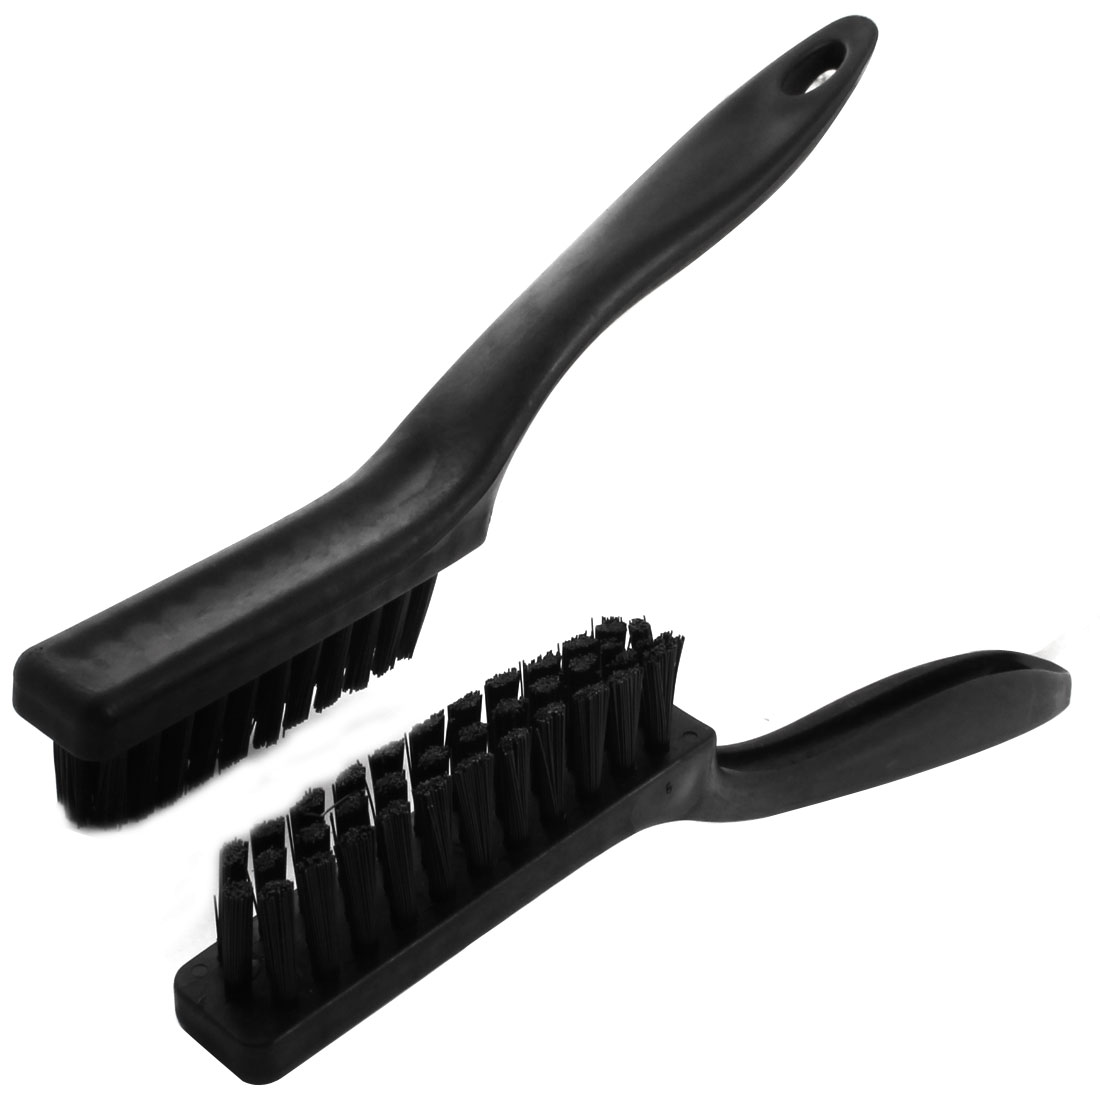 2 Pcs Black Static Control Conductive Ground Electronic ESD Anti-Static Brush Cleaning Tool 22.5cm Length